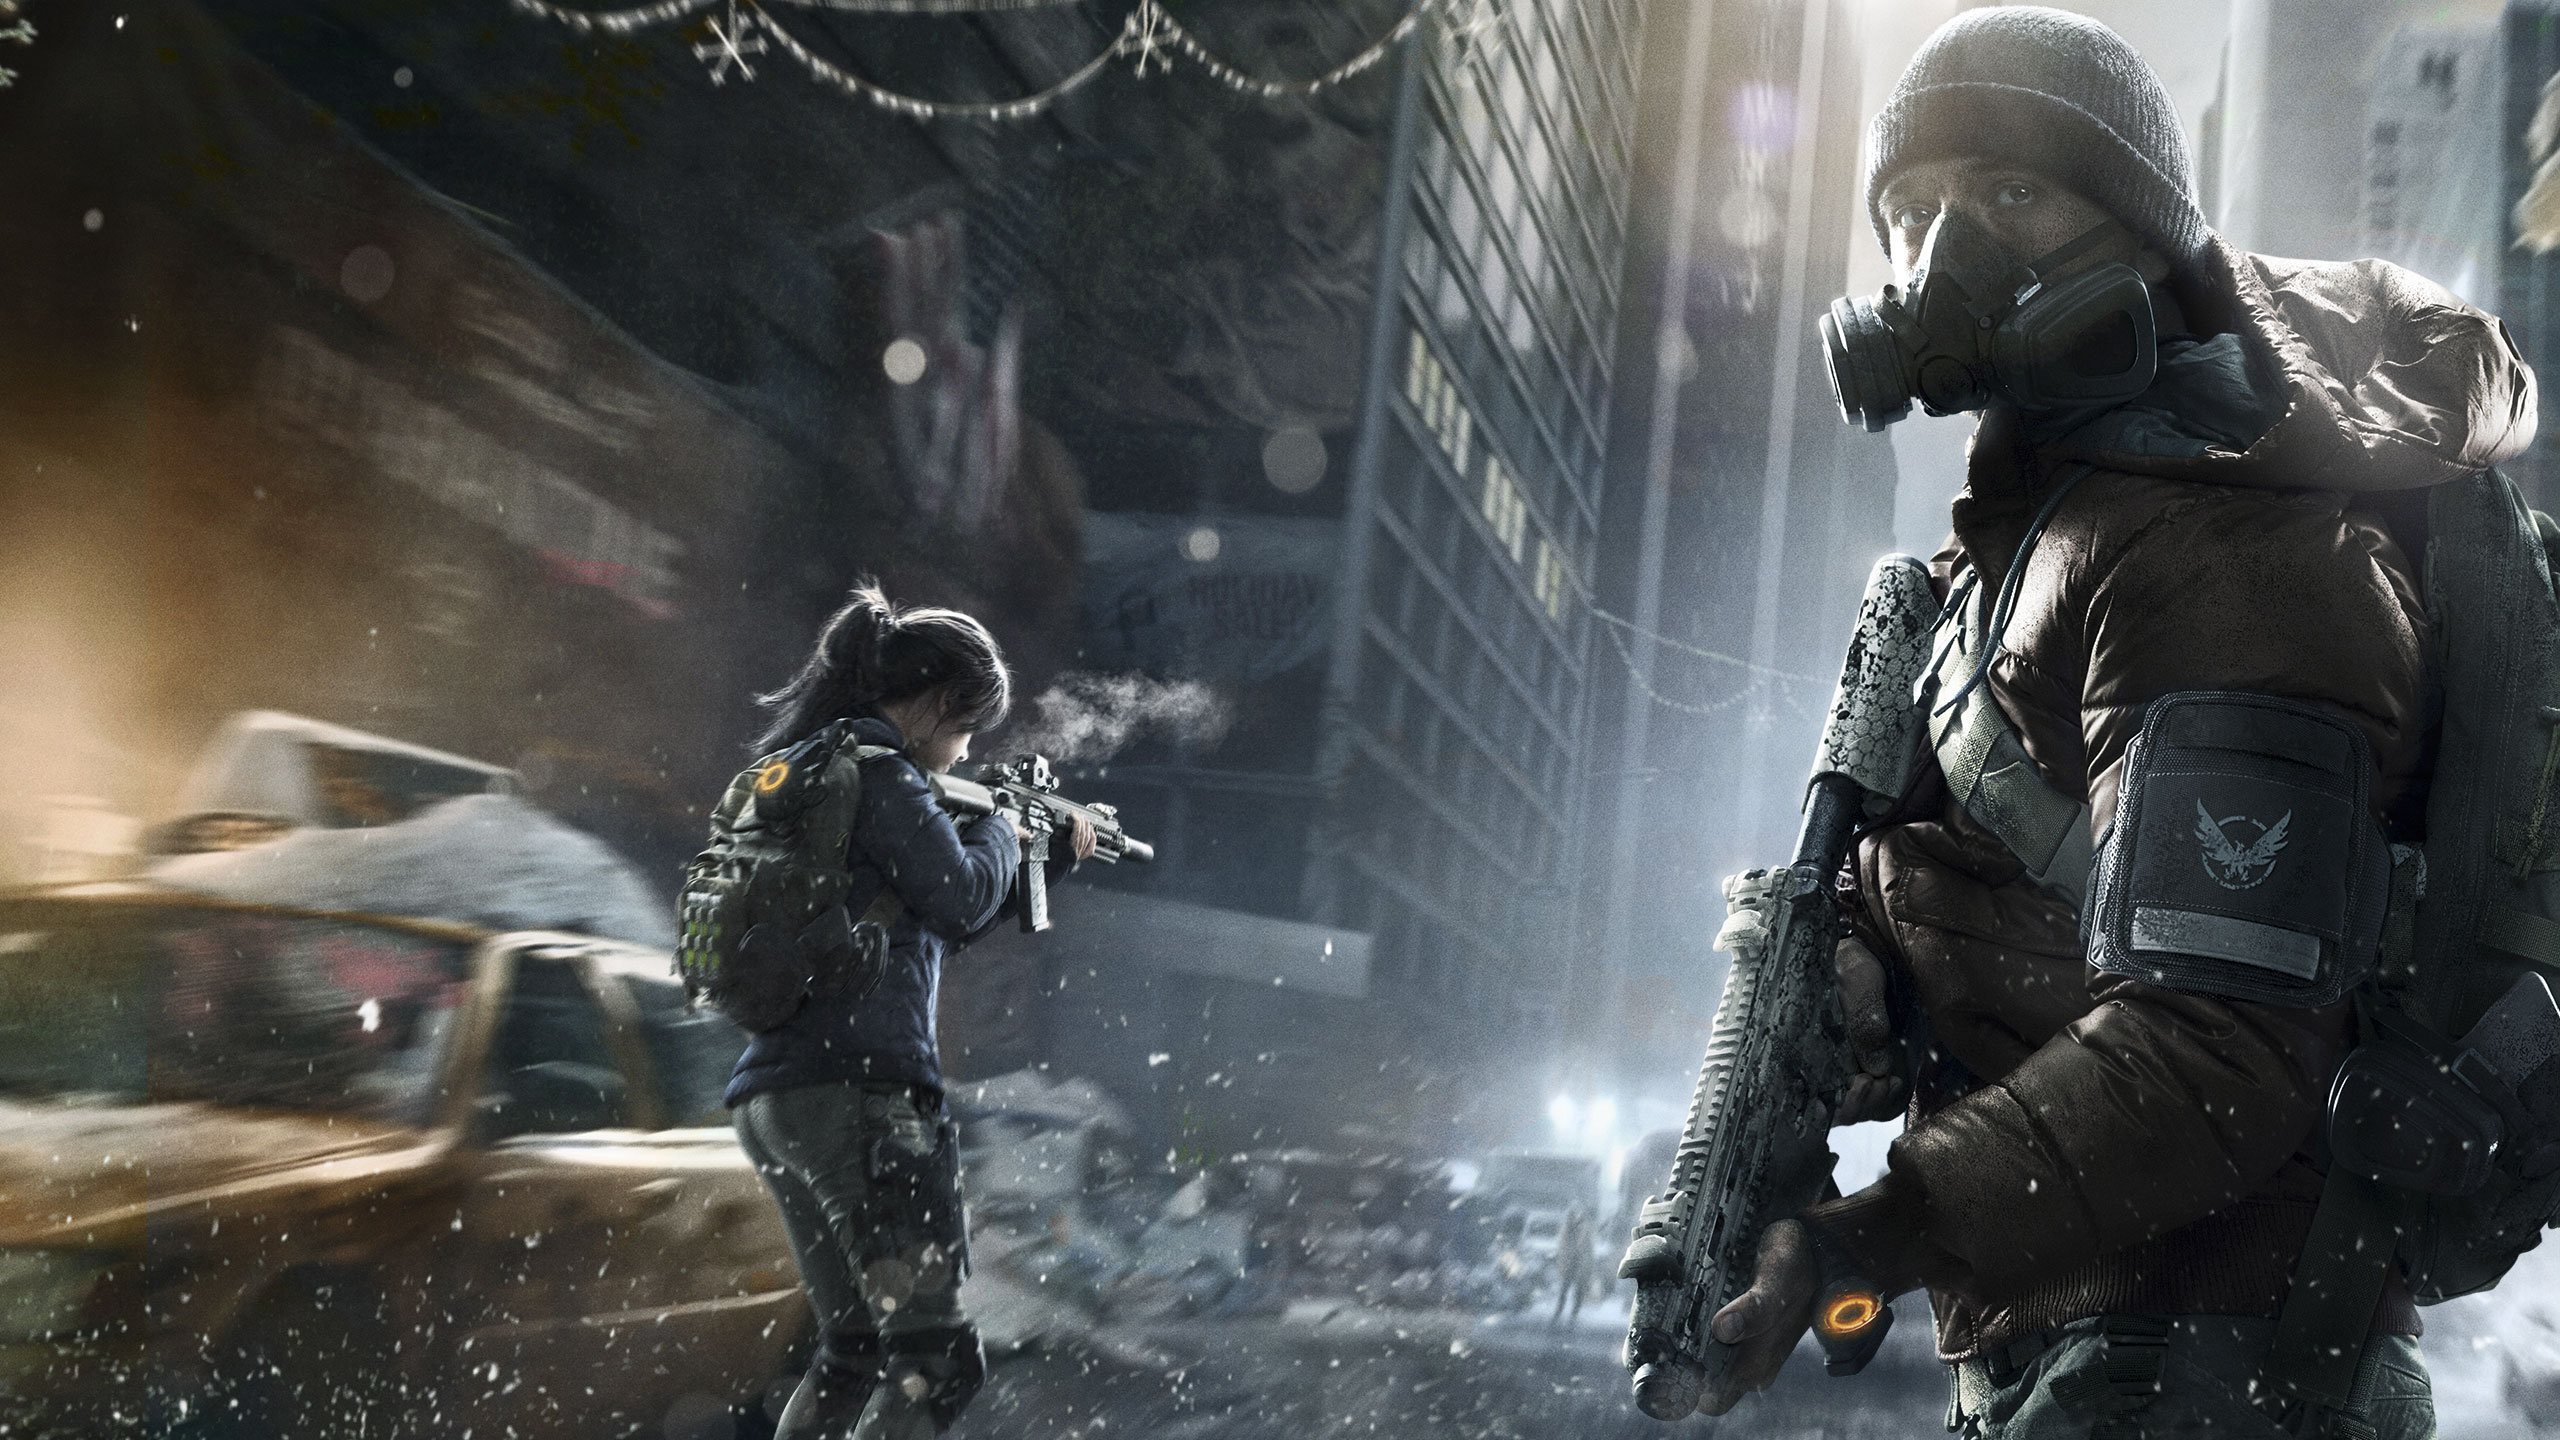 Download Hd 2560x1440 Tom Clancys The Division Computer